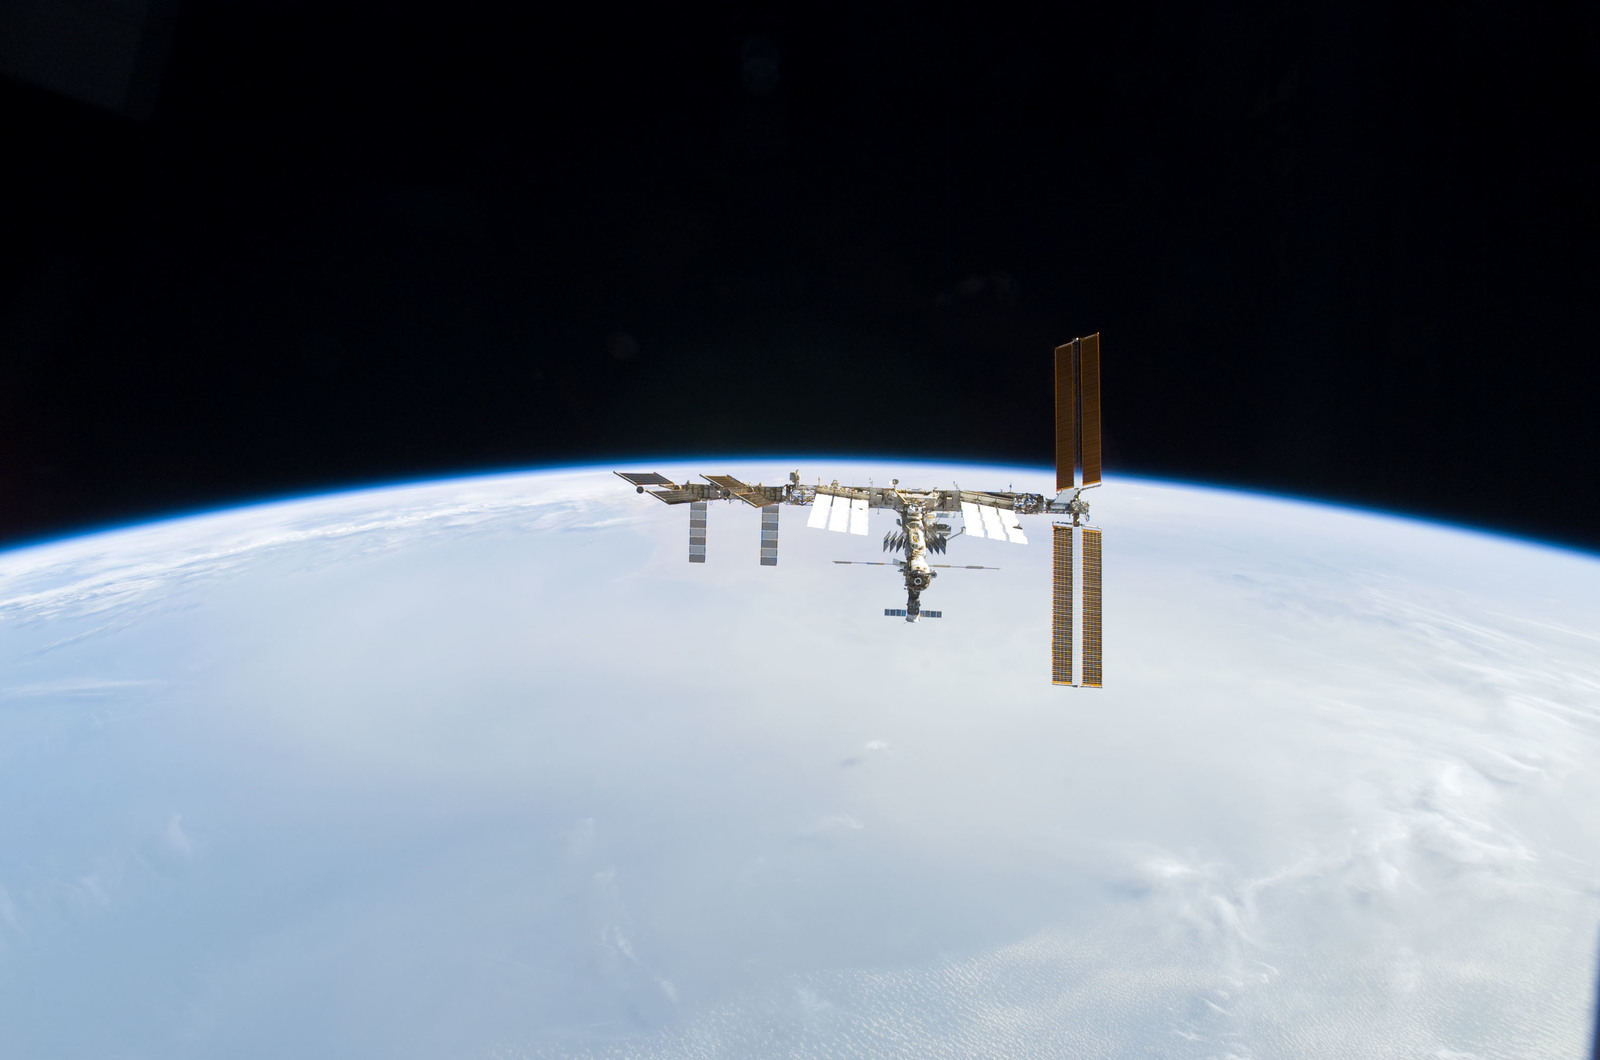 S122E010963 - STS-122 - View of ISS after STS-122 Undocking